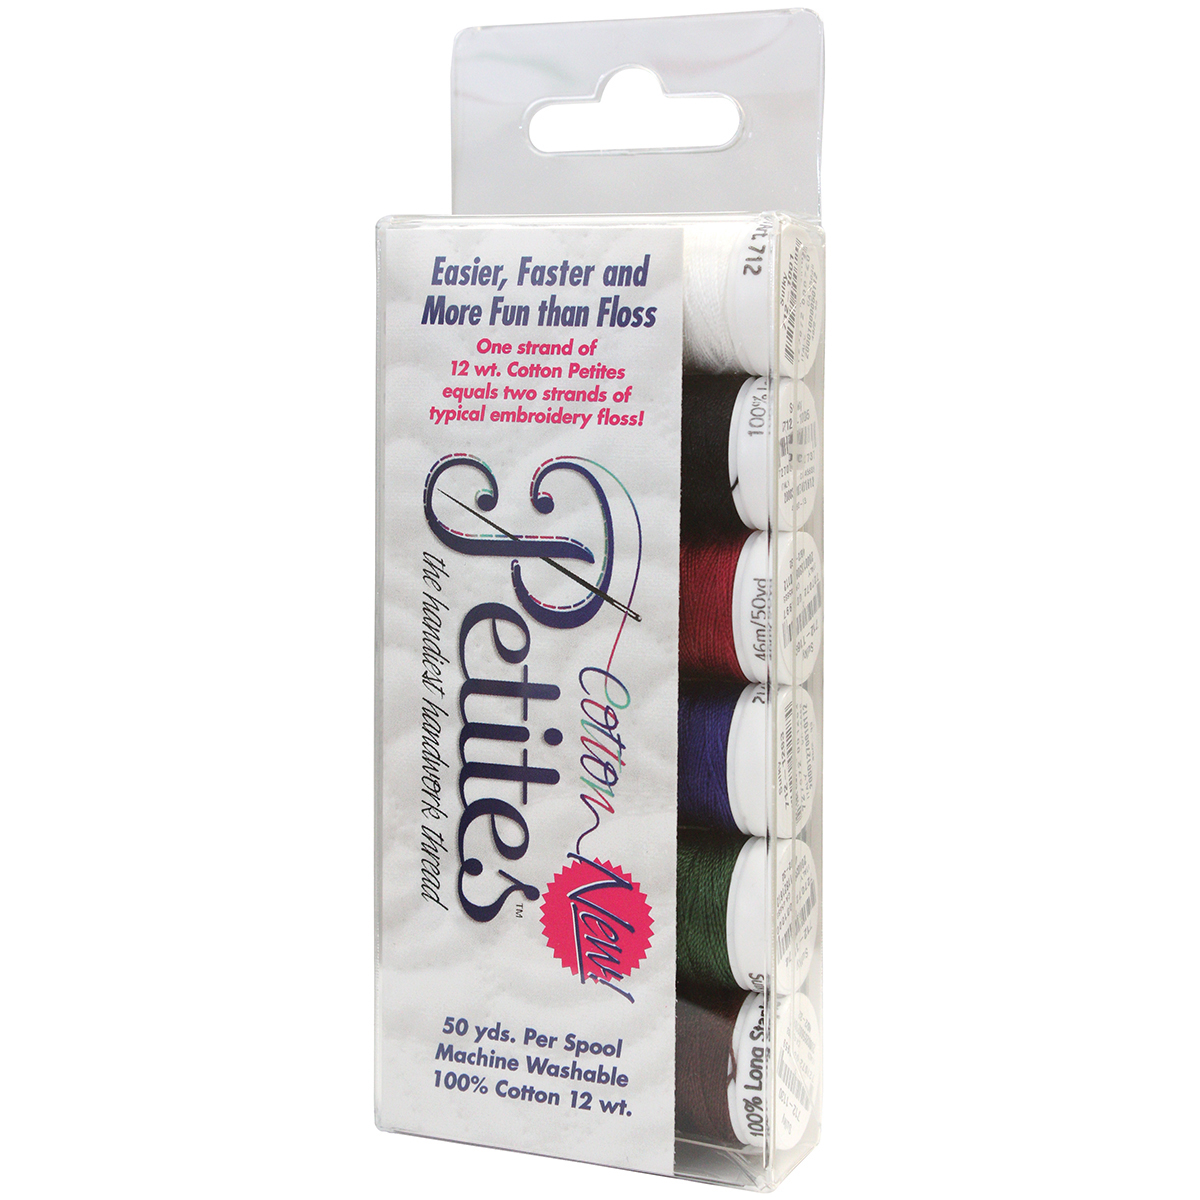 Sulky Sampler 12wt Cotton Petites 6/Pkg-Most Popular Assortment